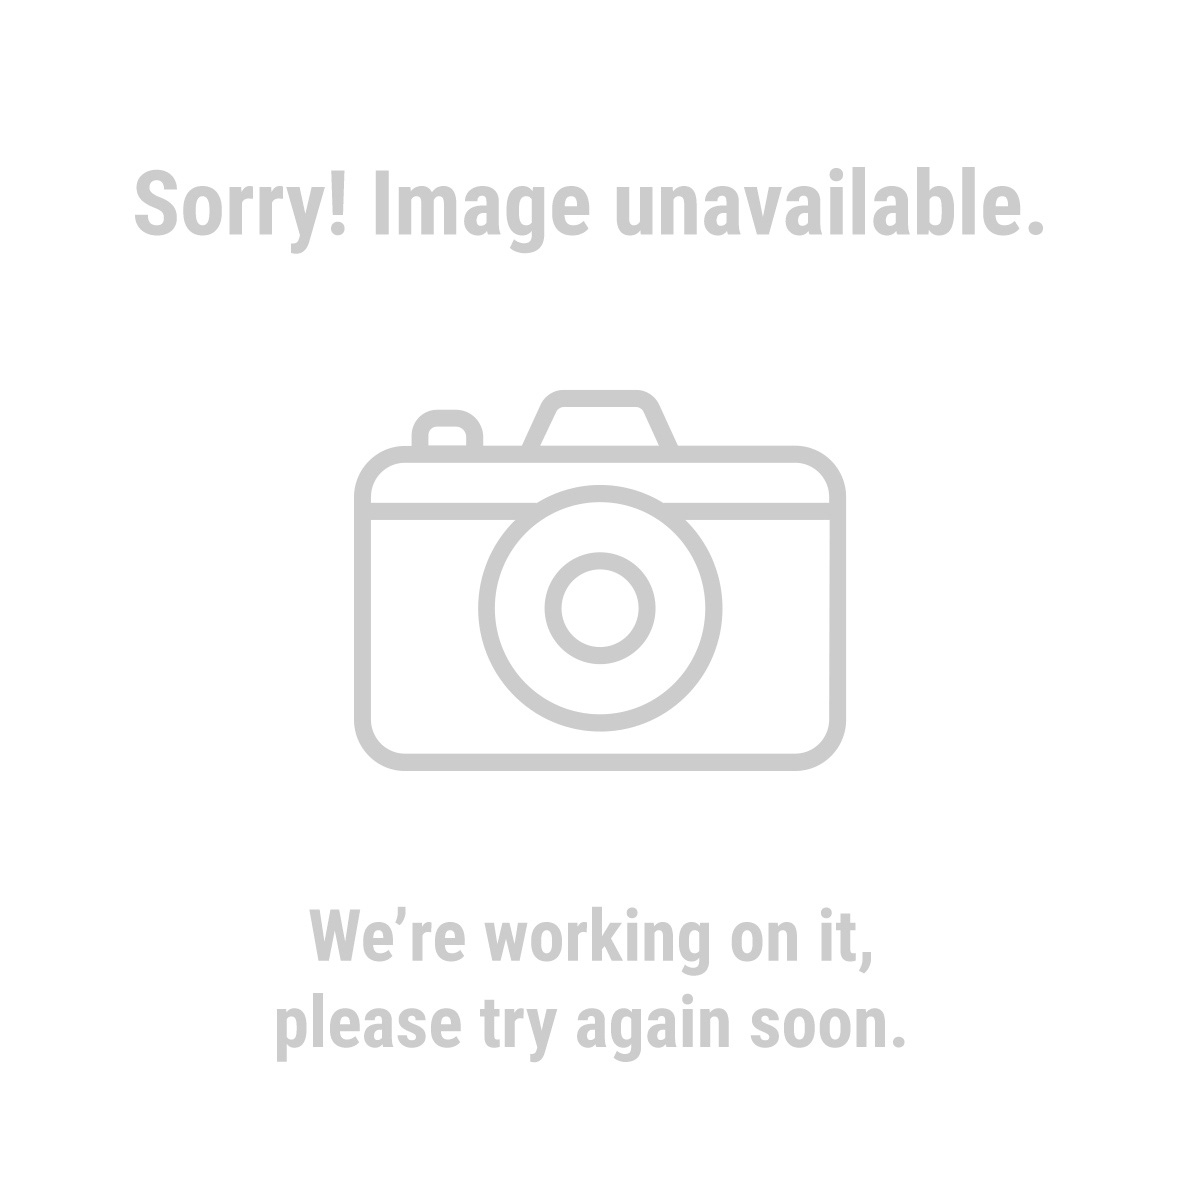 "Haul-Master 42708 870 Lb. Capacity 40"" x 49"" Heavy Duty Utility Trailer with 8"" Wheels and Tires"